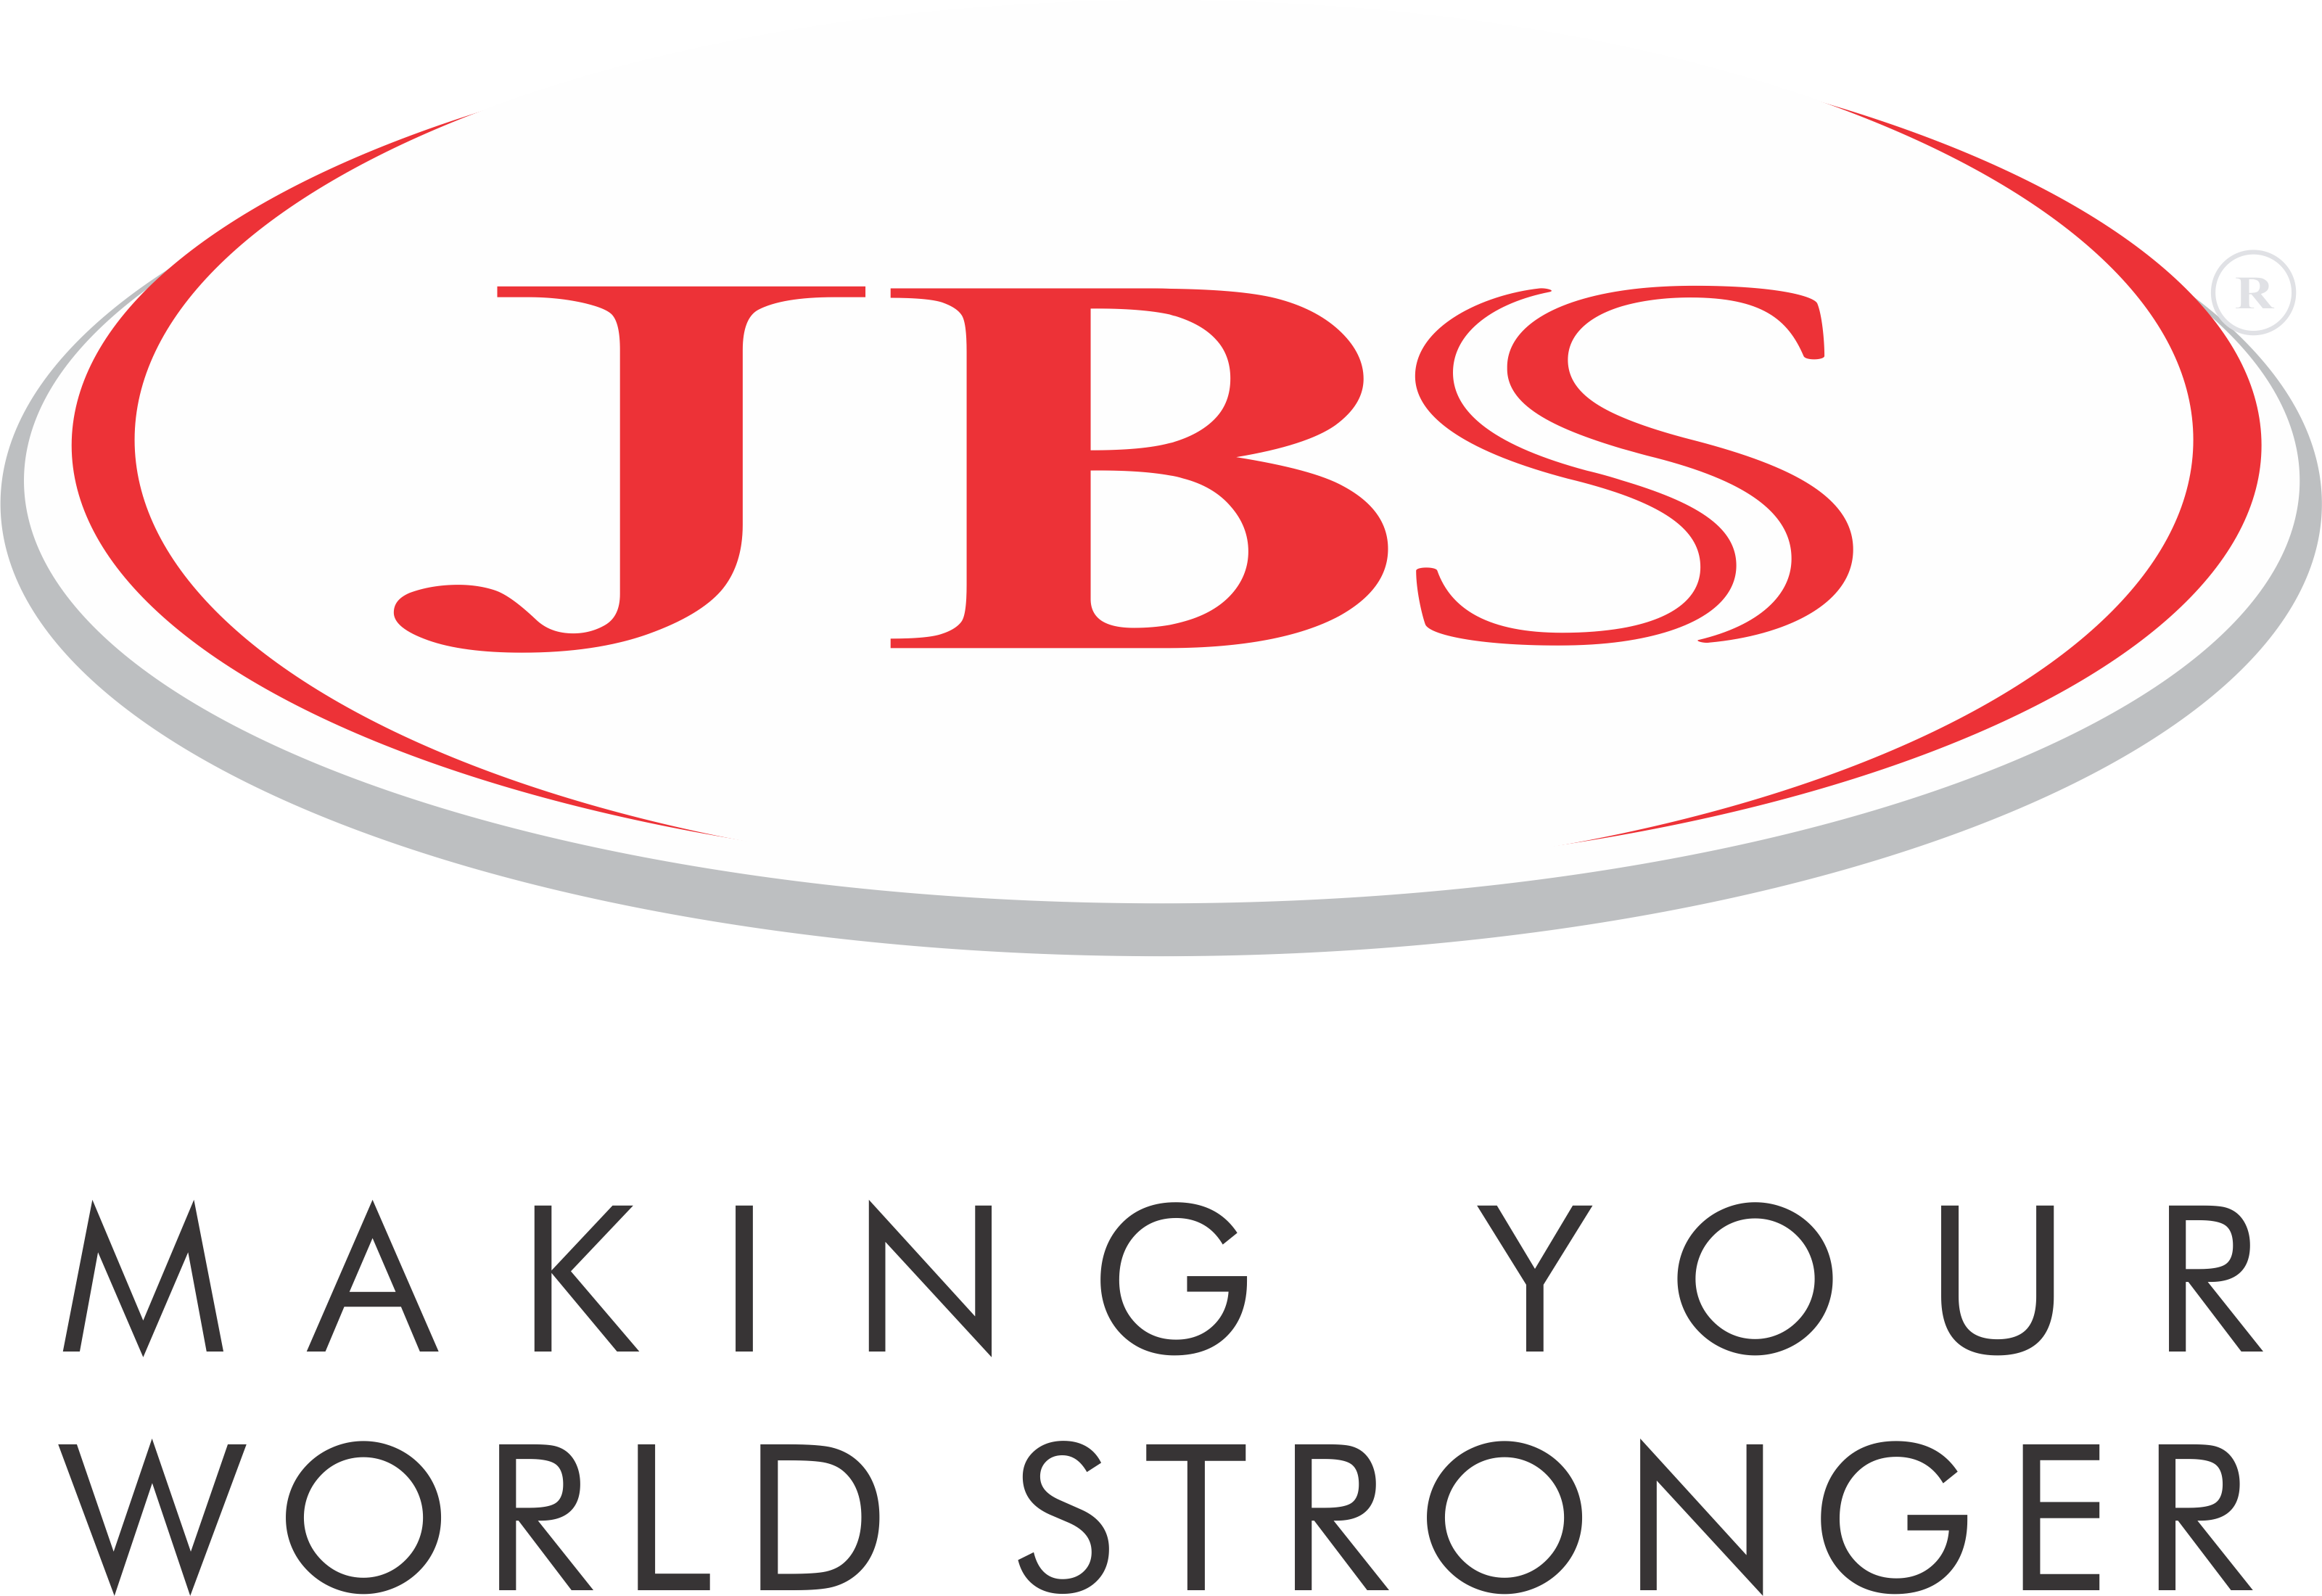 JBS P1 Substandard Production Report